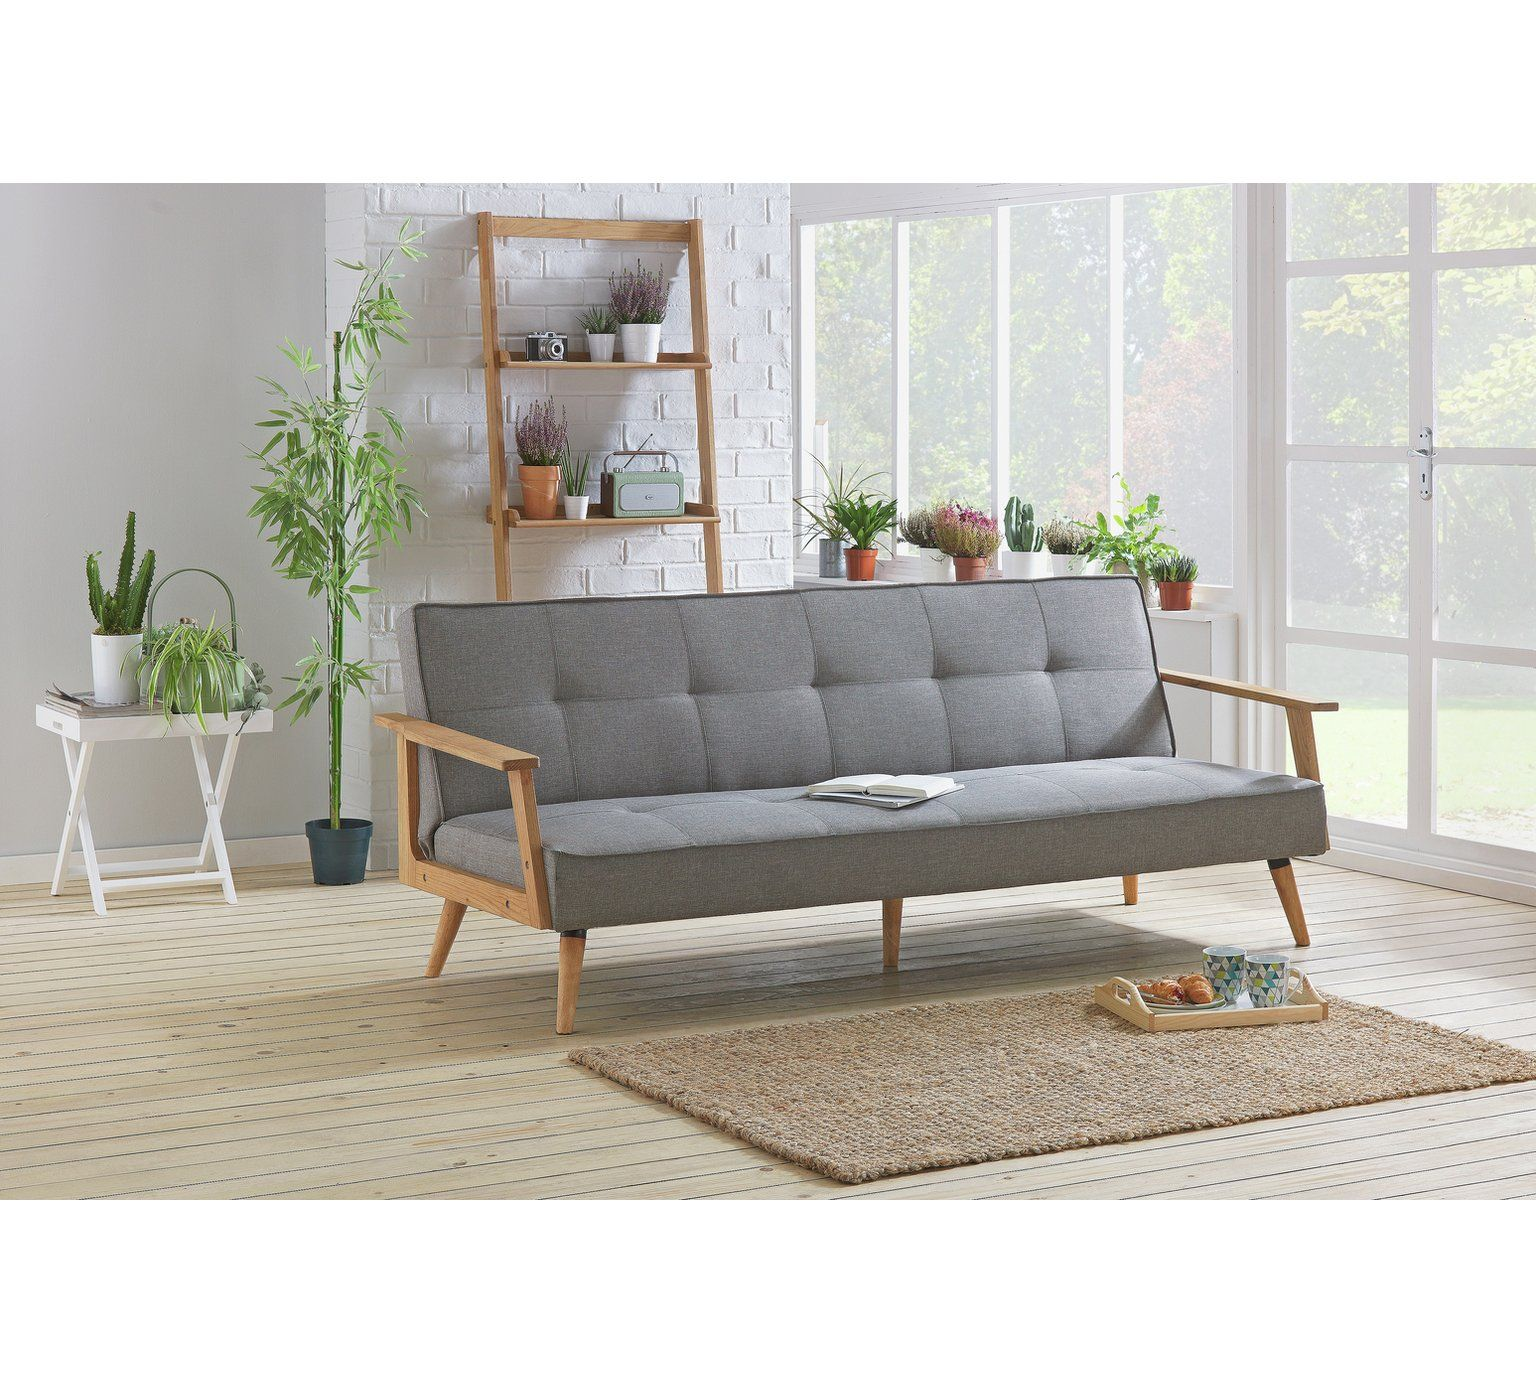 sofa beds argos co uk marshmallow flip open elmo sesame buy hygena margot 2 seater fabric bed charcoal at